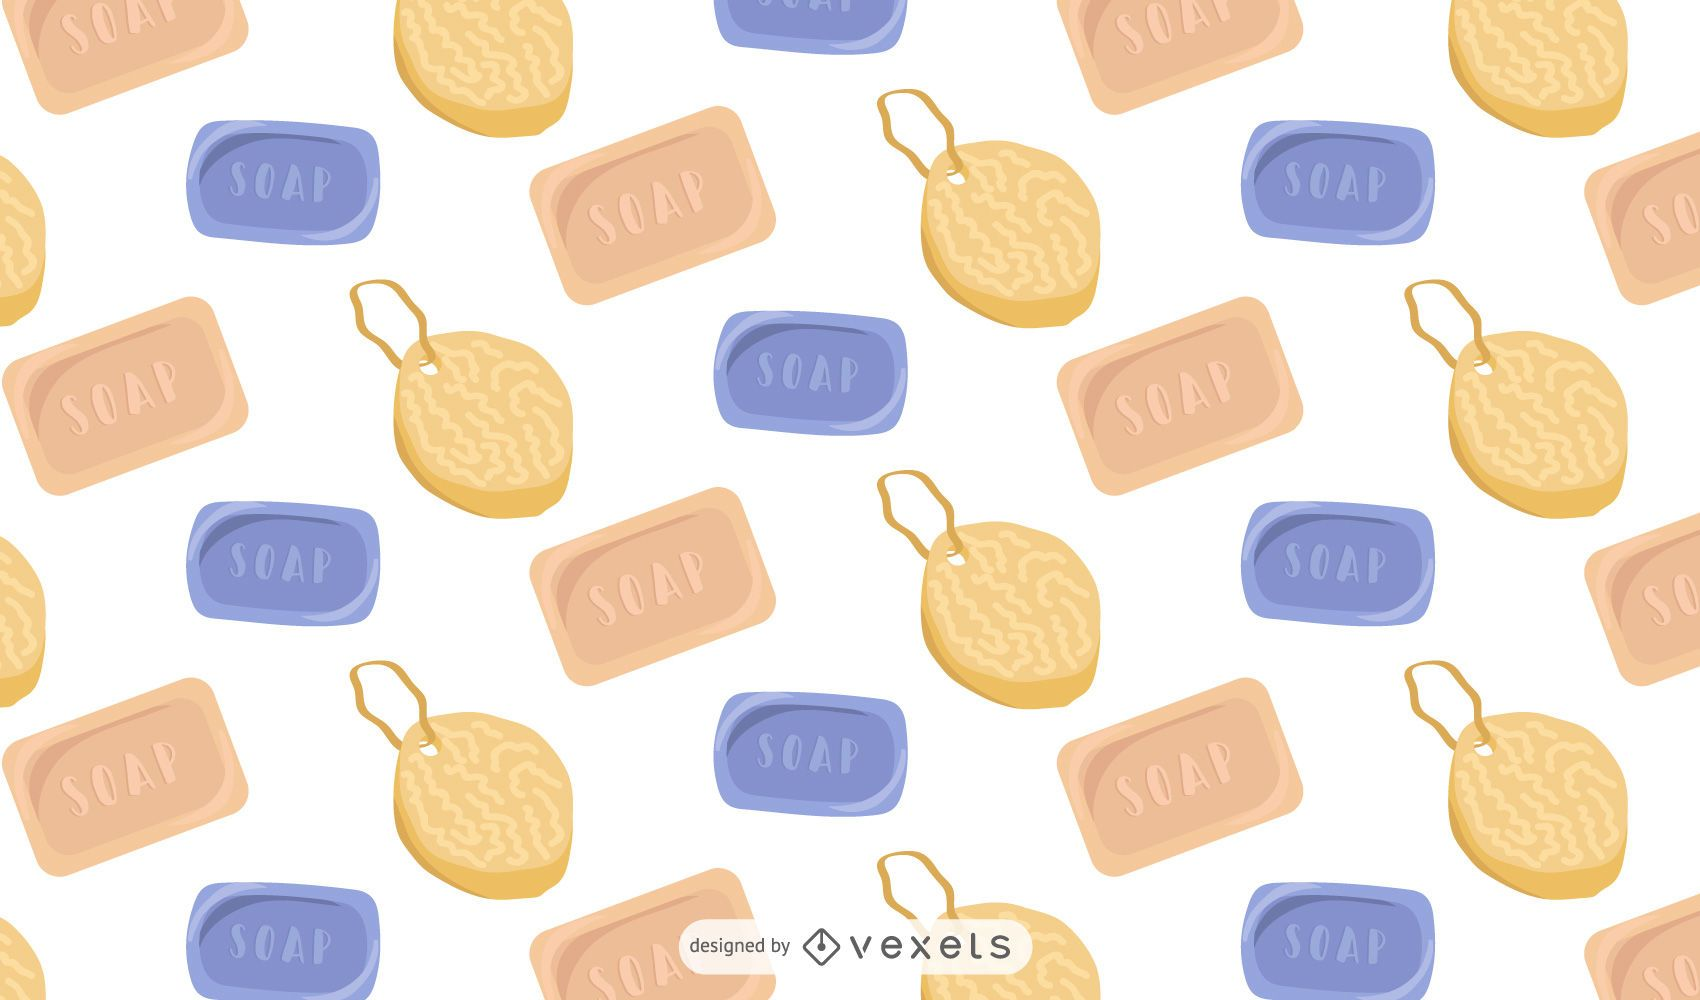 Soaps and sponges pattern design